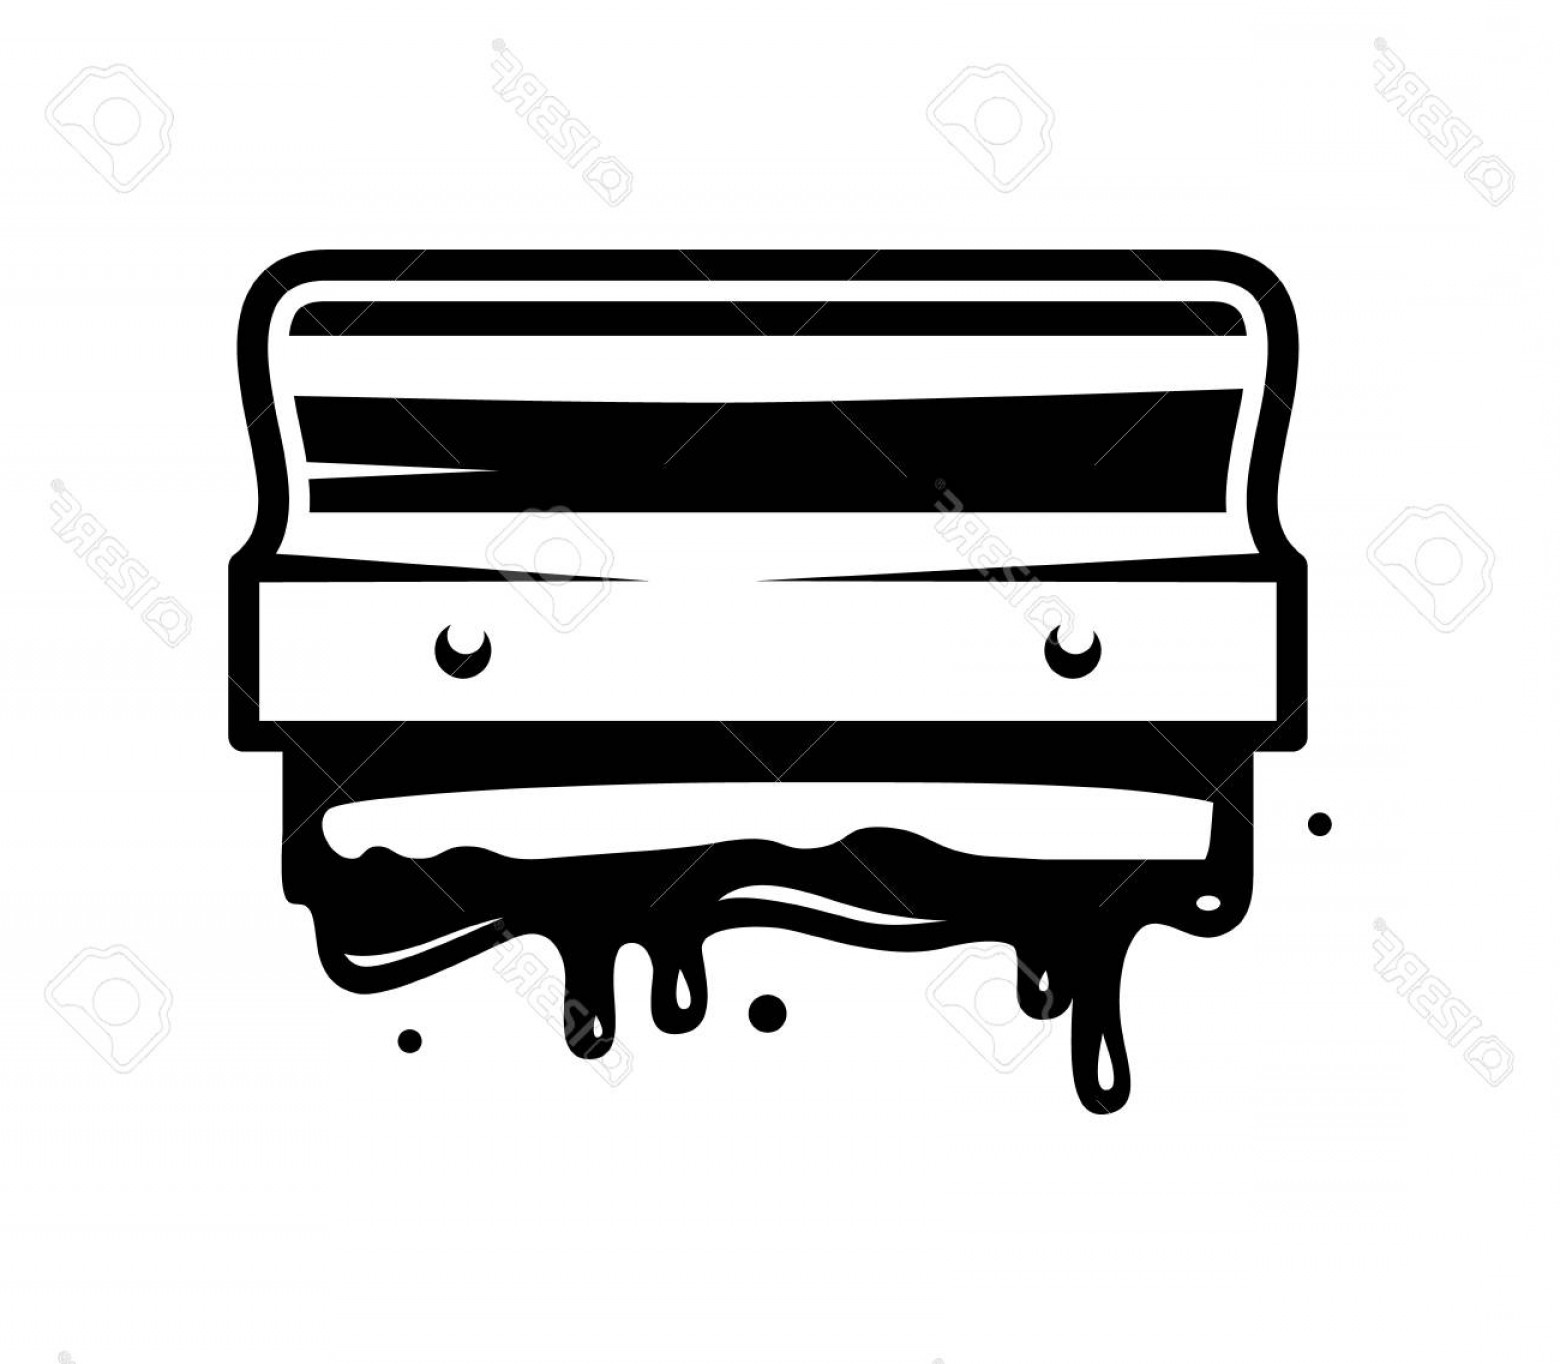 Screen Printing Equipment Vector: Photostock Vector Vintage Monochrome Screen Printing Queegee Template With Paint Splashes Isolated Vector Illustration